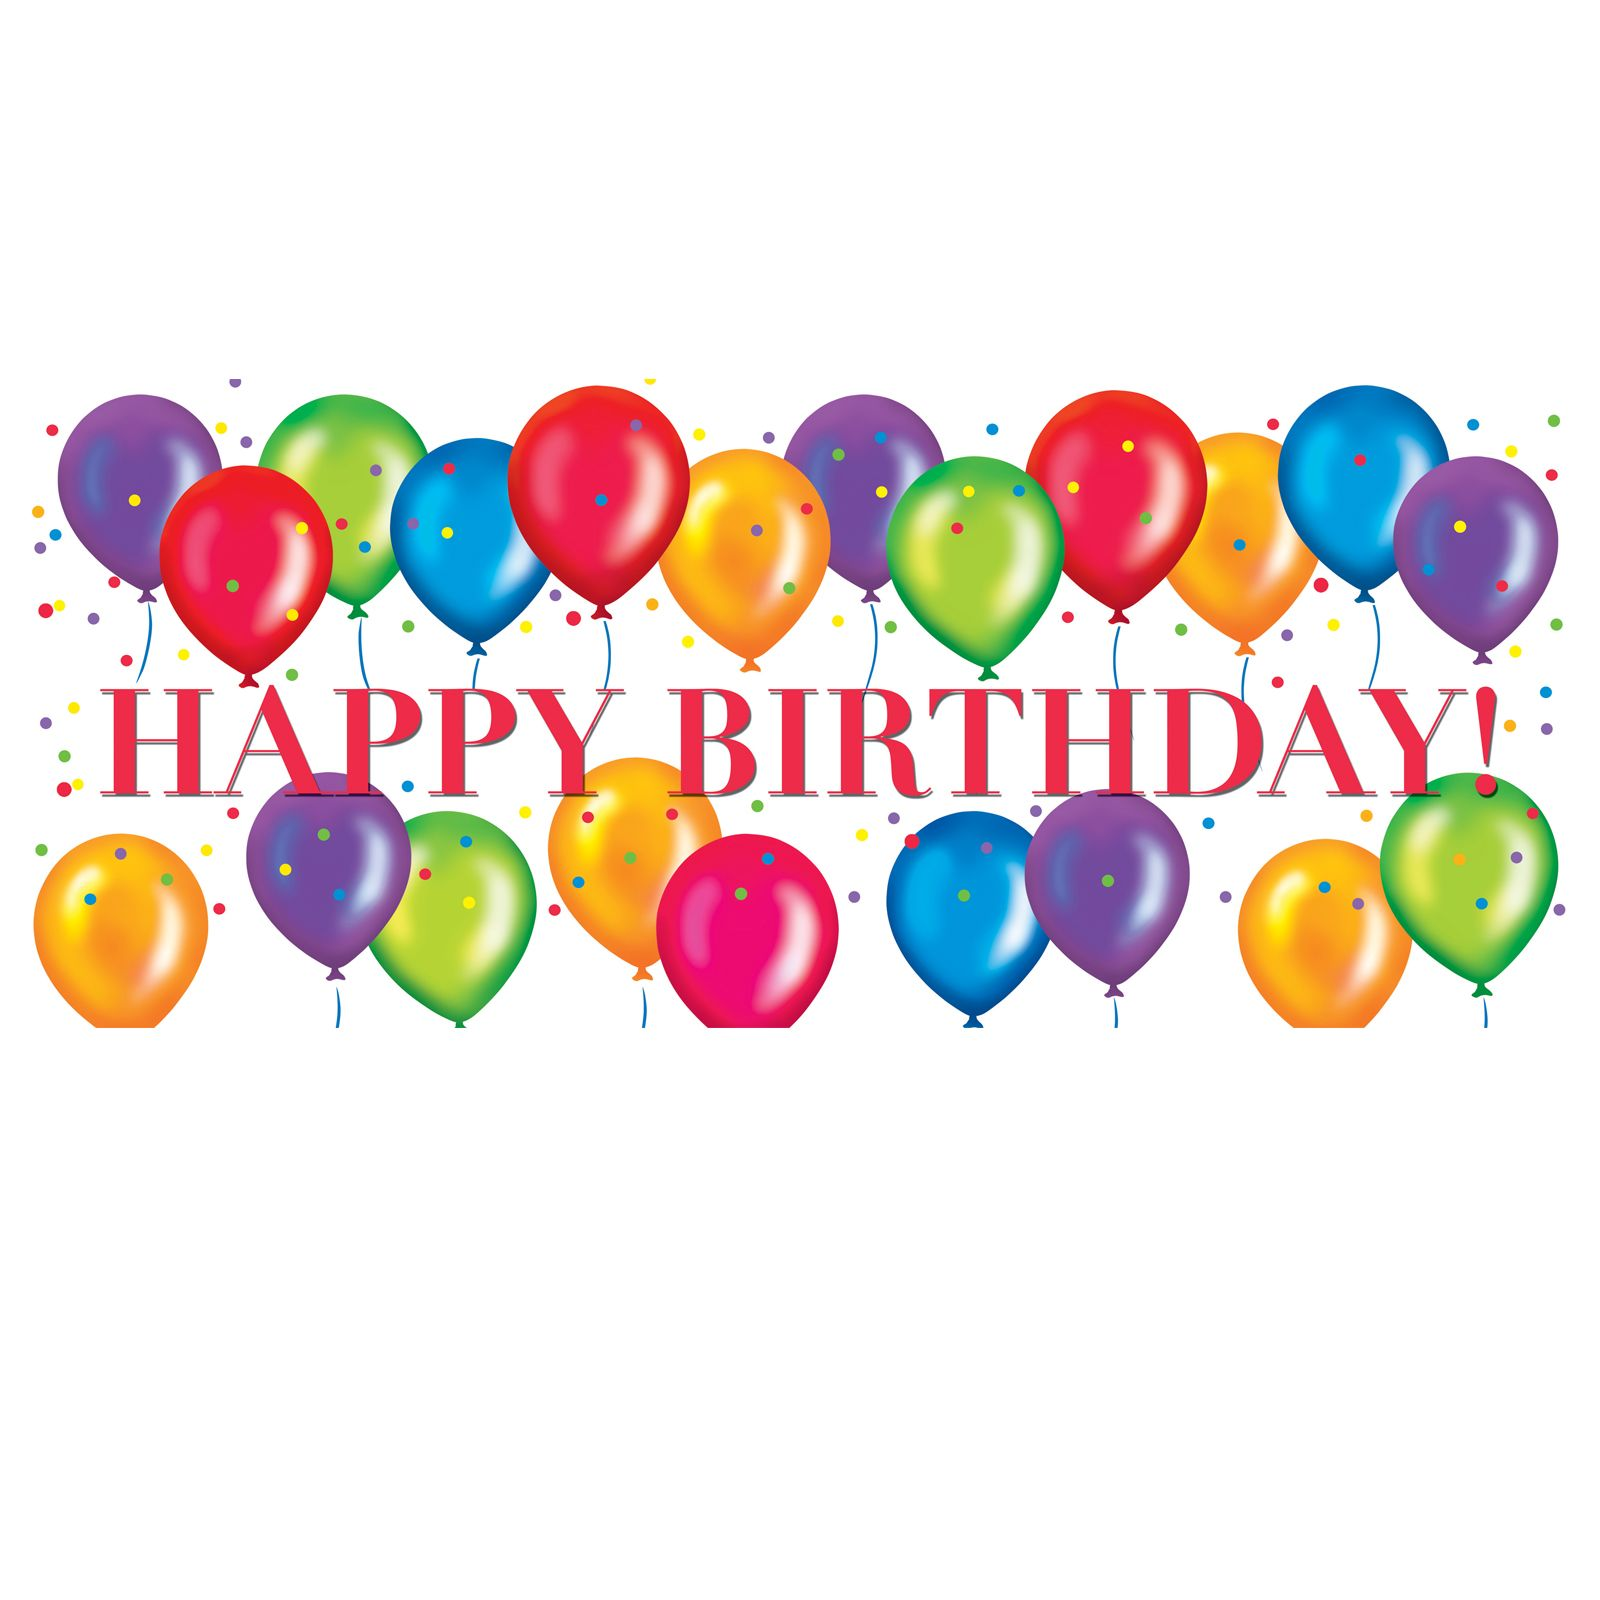 Free birthday clipart images clipart transparent download free happy birthday graphics | Birthday Freebies! | Happy Birthday ... clipart transparent download